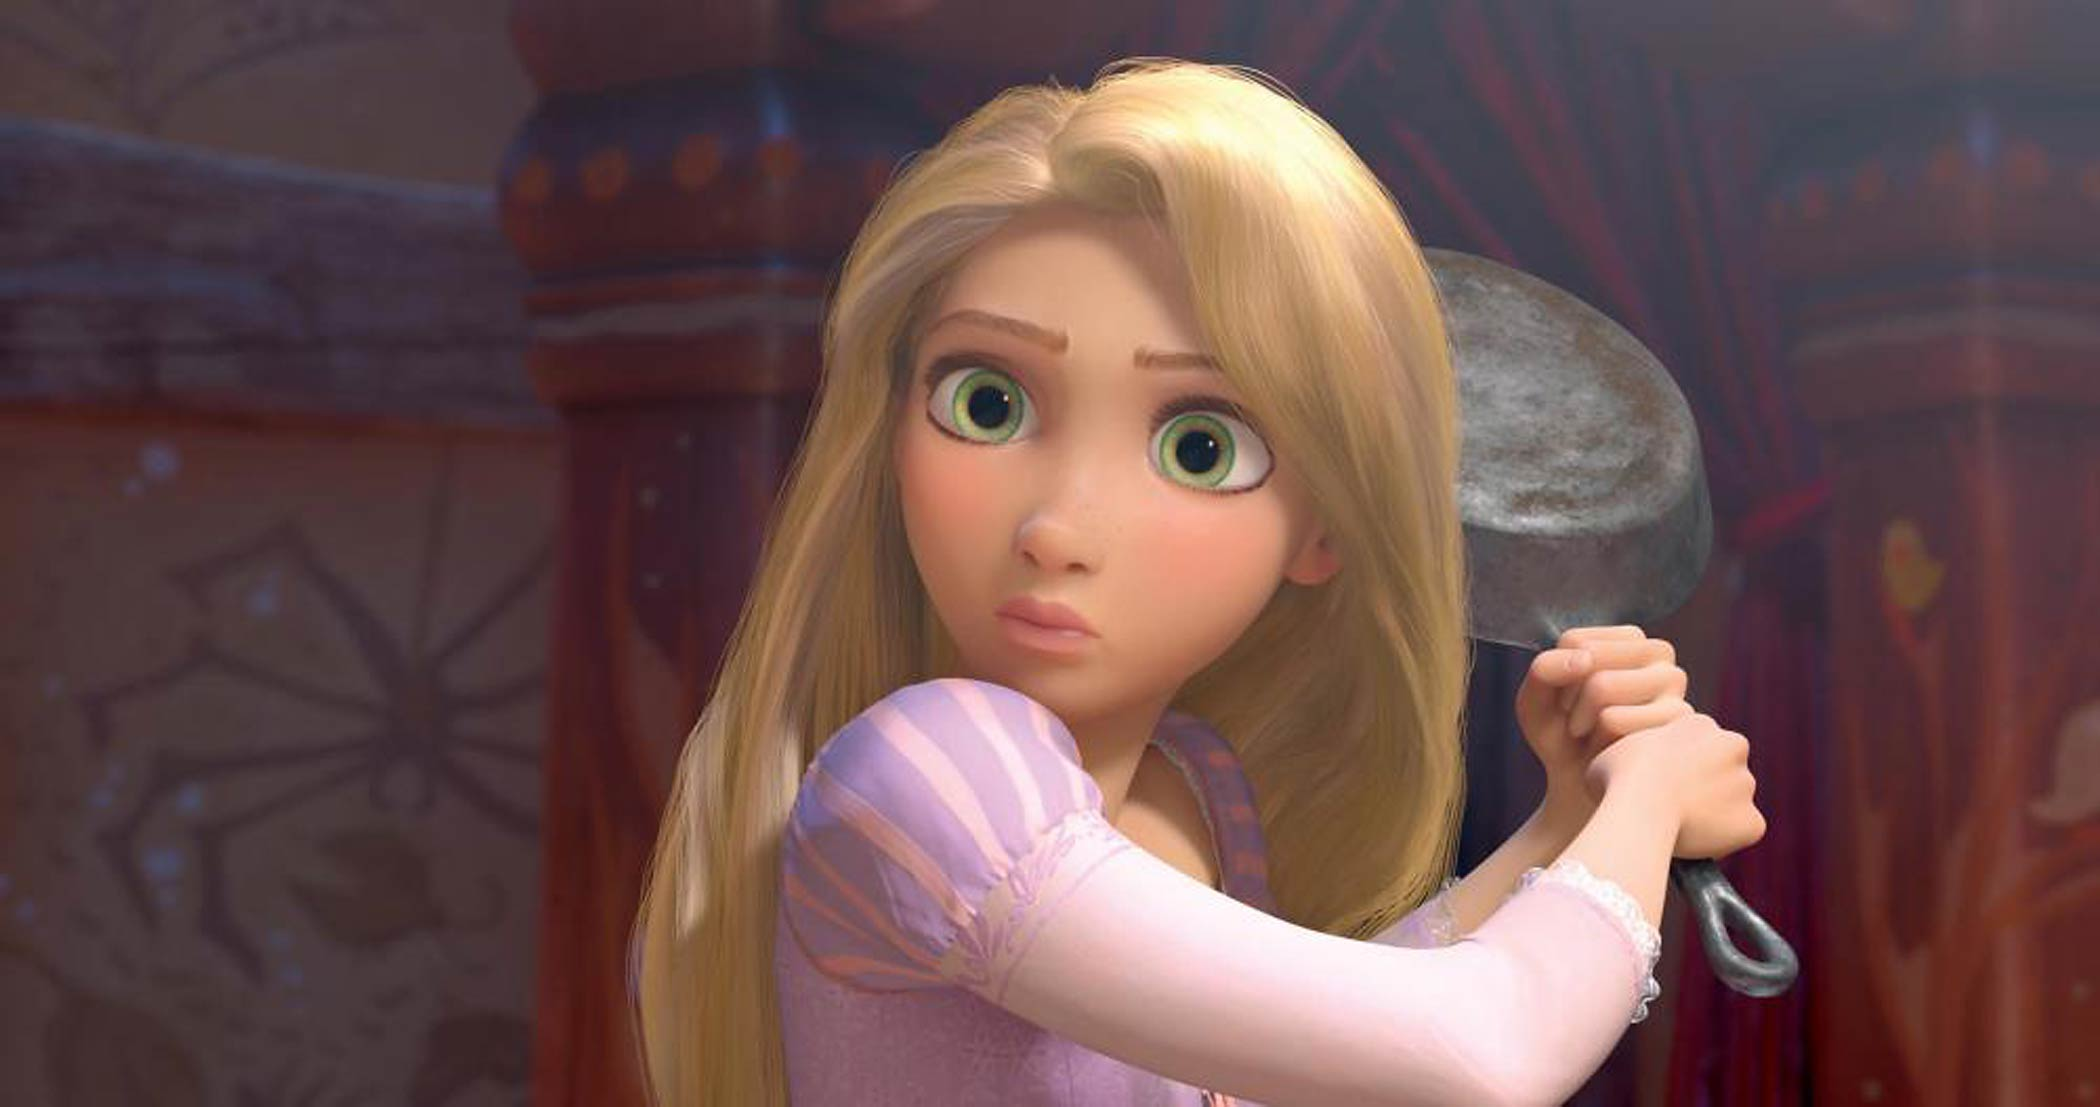 Mandy Moore stars as Rapunzel in the 2010 movie Tangled.